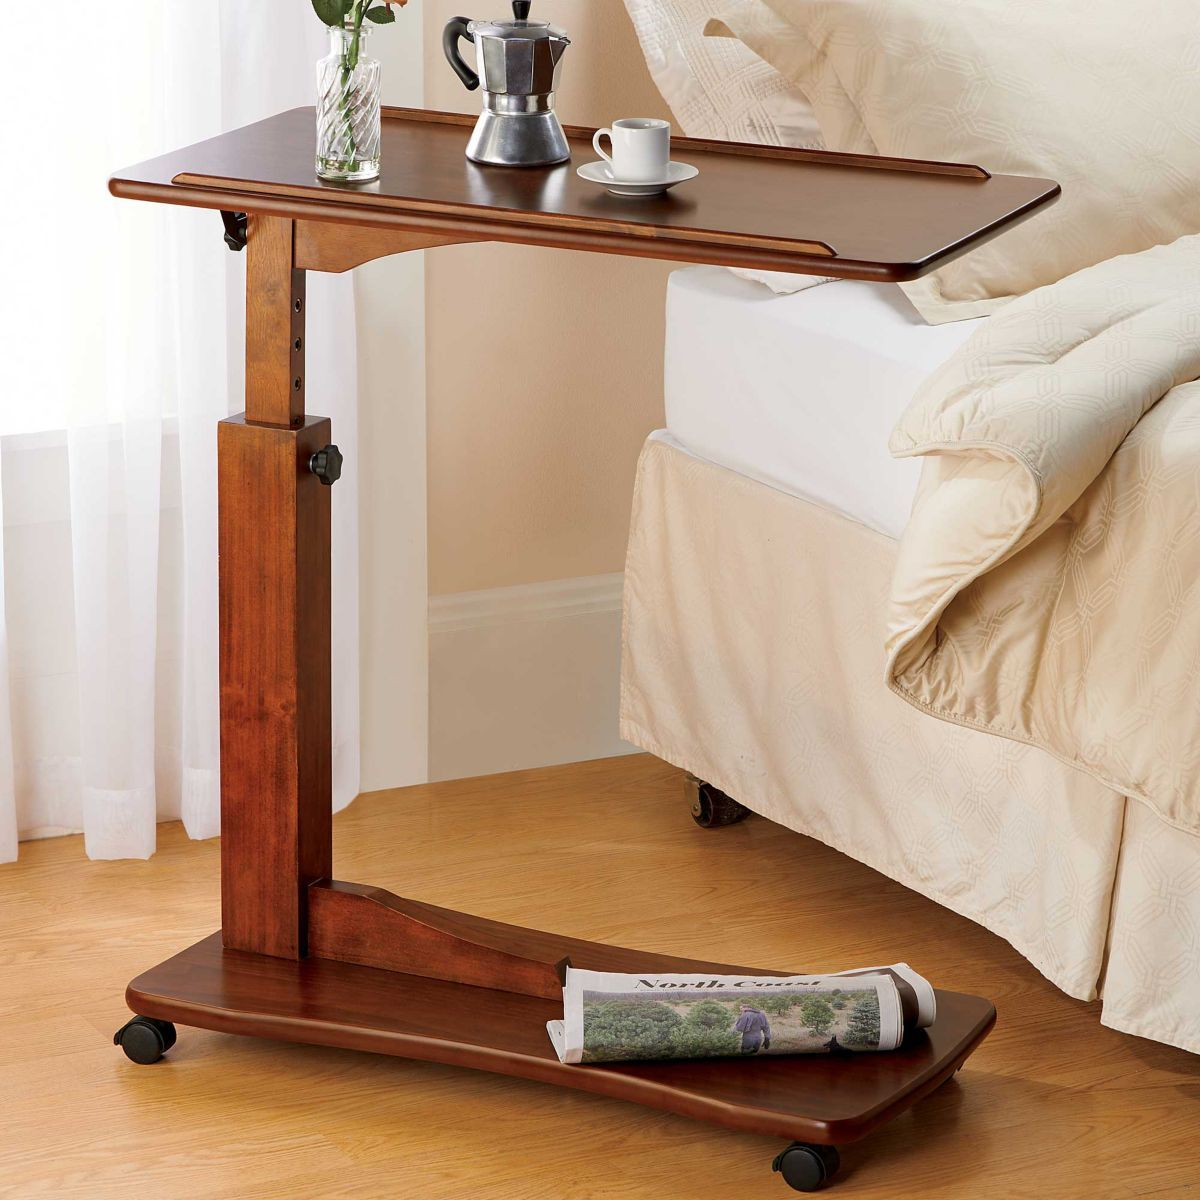 Adjustable Bedside Table Standing Desk For Short Breaks